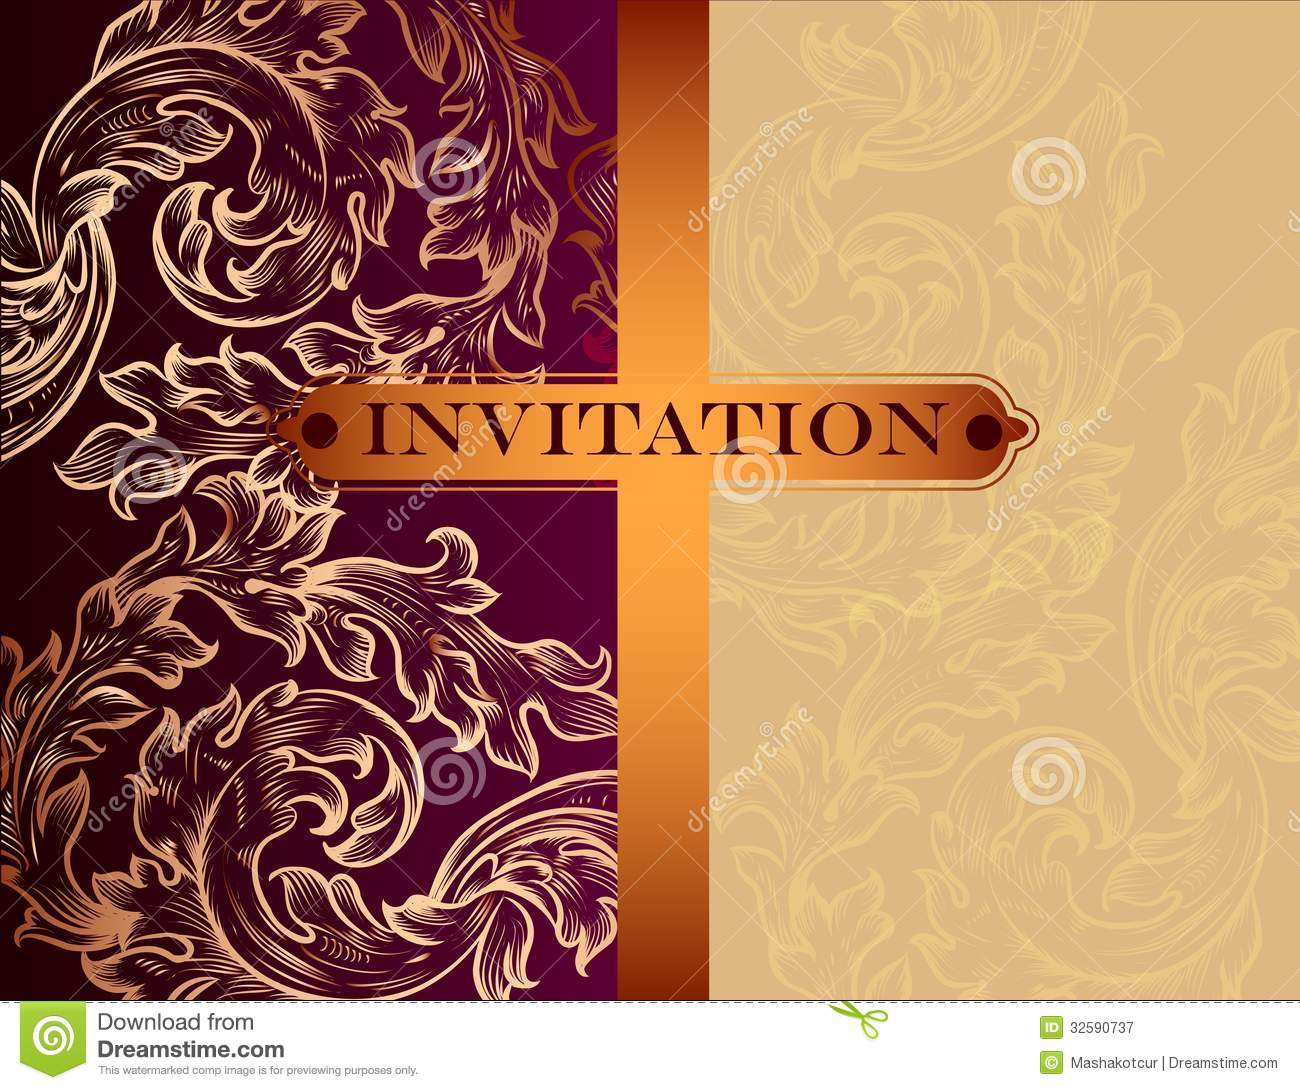 Luxury Wedding Invitation as luxury invitations template